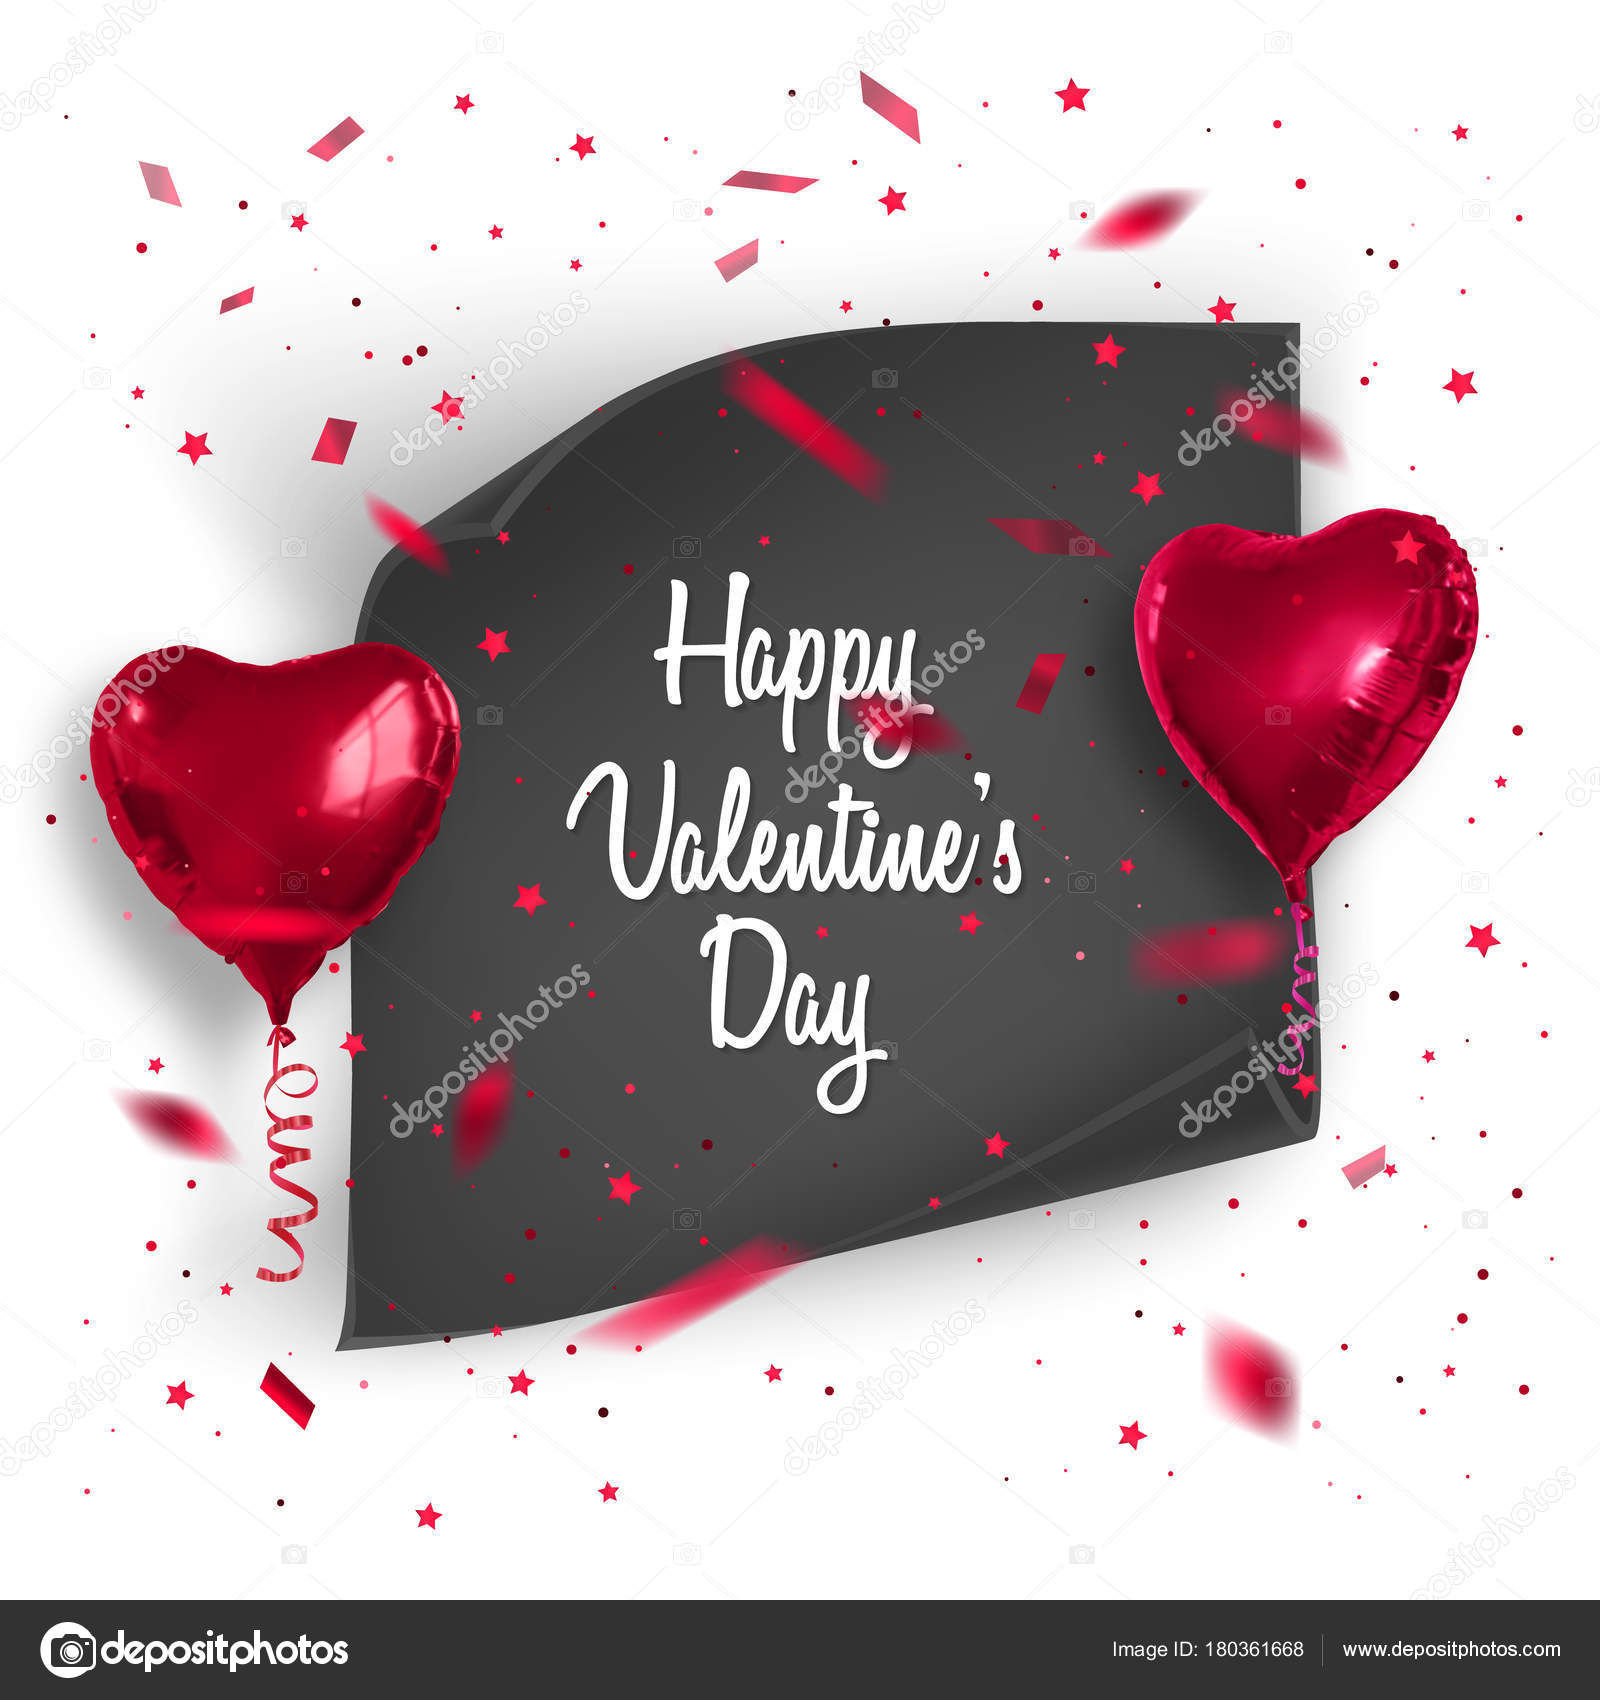 valentines day card background with confetti and realistic balloons